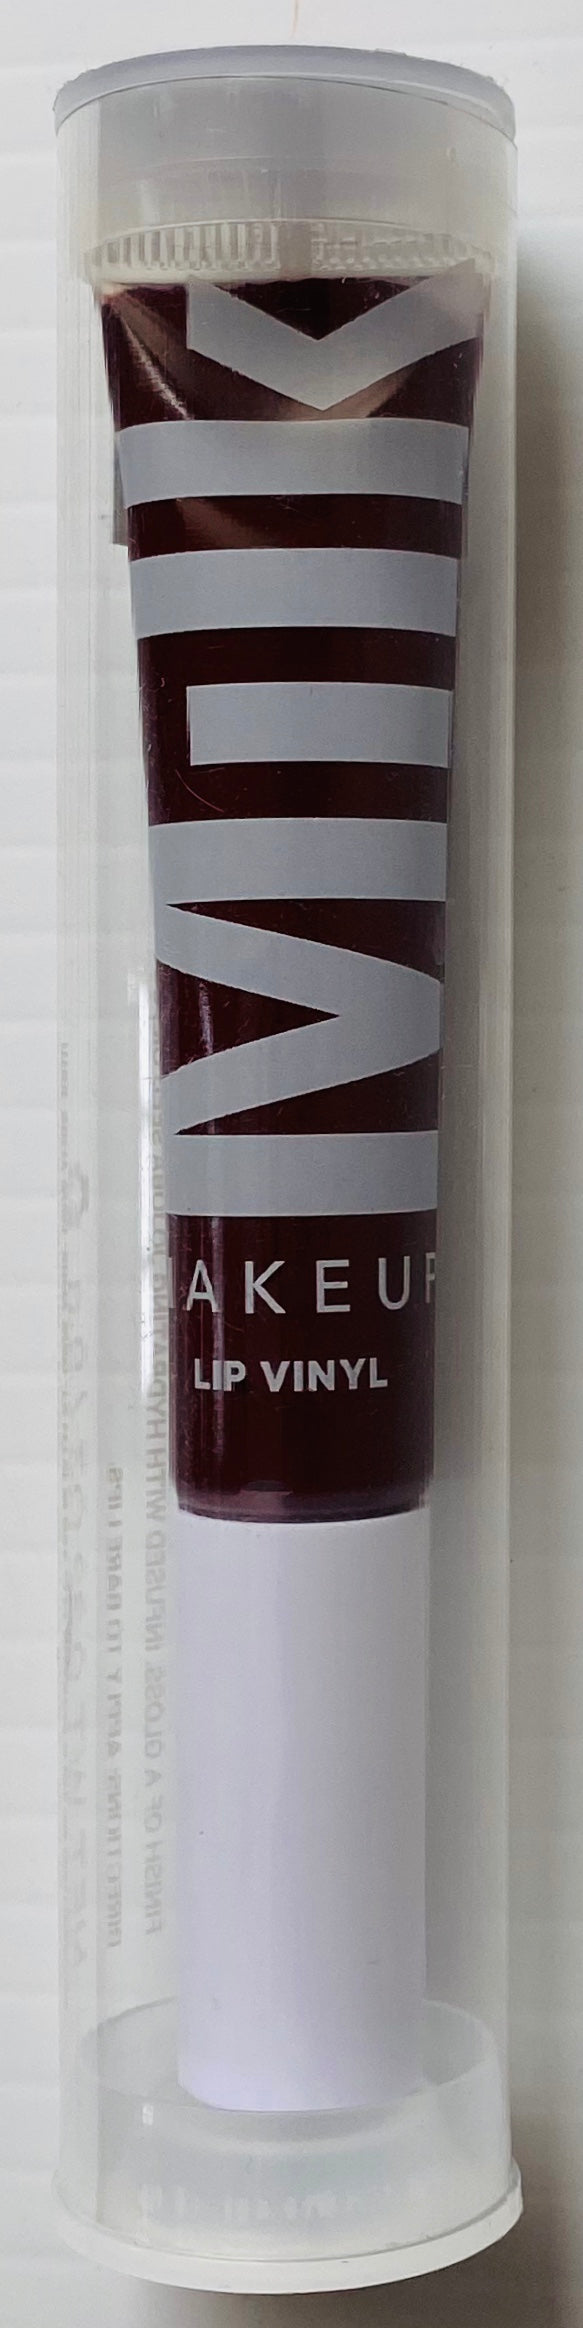 Wholesale - Milk Makeup - Lip Vinyl - Queen - 0.32 Oz. / 9 g